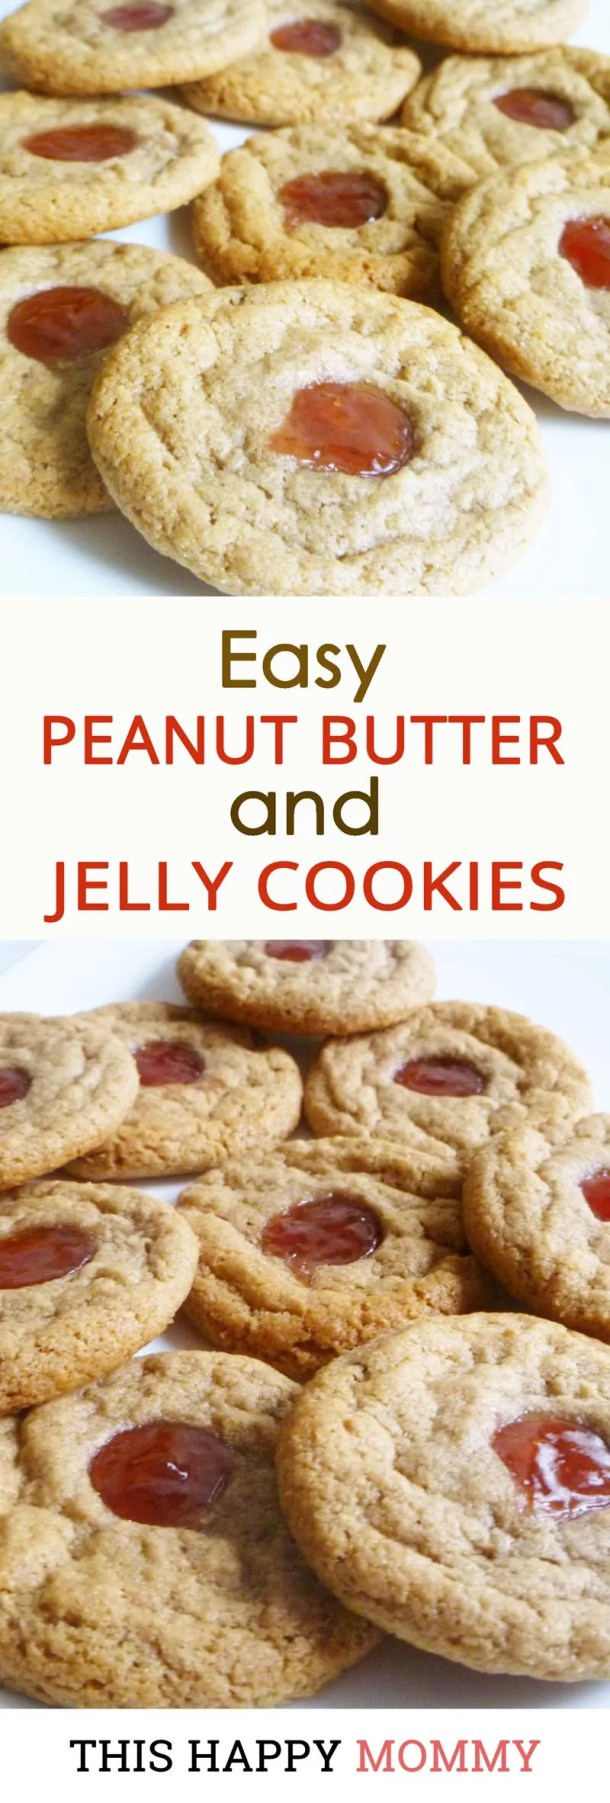 Easy Peanut Butter and Jelly Cookies -- With a pop of peanut butter and jelly flavour, these quick and easy cookies are ready in only 15 minutes. | | Healthy Cookie Dessert Recipes | Easy to Make Sweet Treat Desserts | Easy Healthy Cookie Dessert Recipe | Simple and Light Dessert | #dessert #cookie #diy #recipes #healthyrecipes | thishappymommy.com